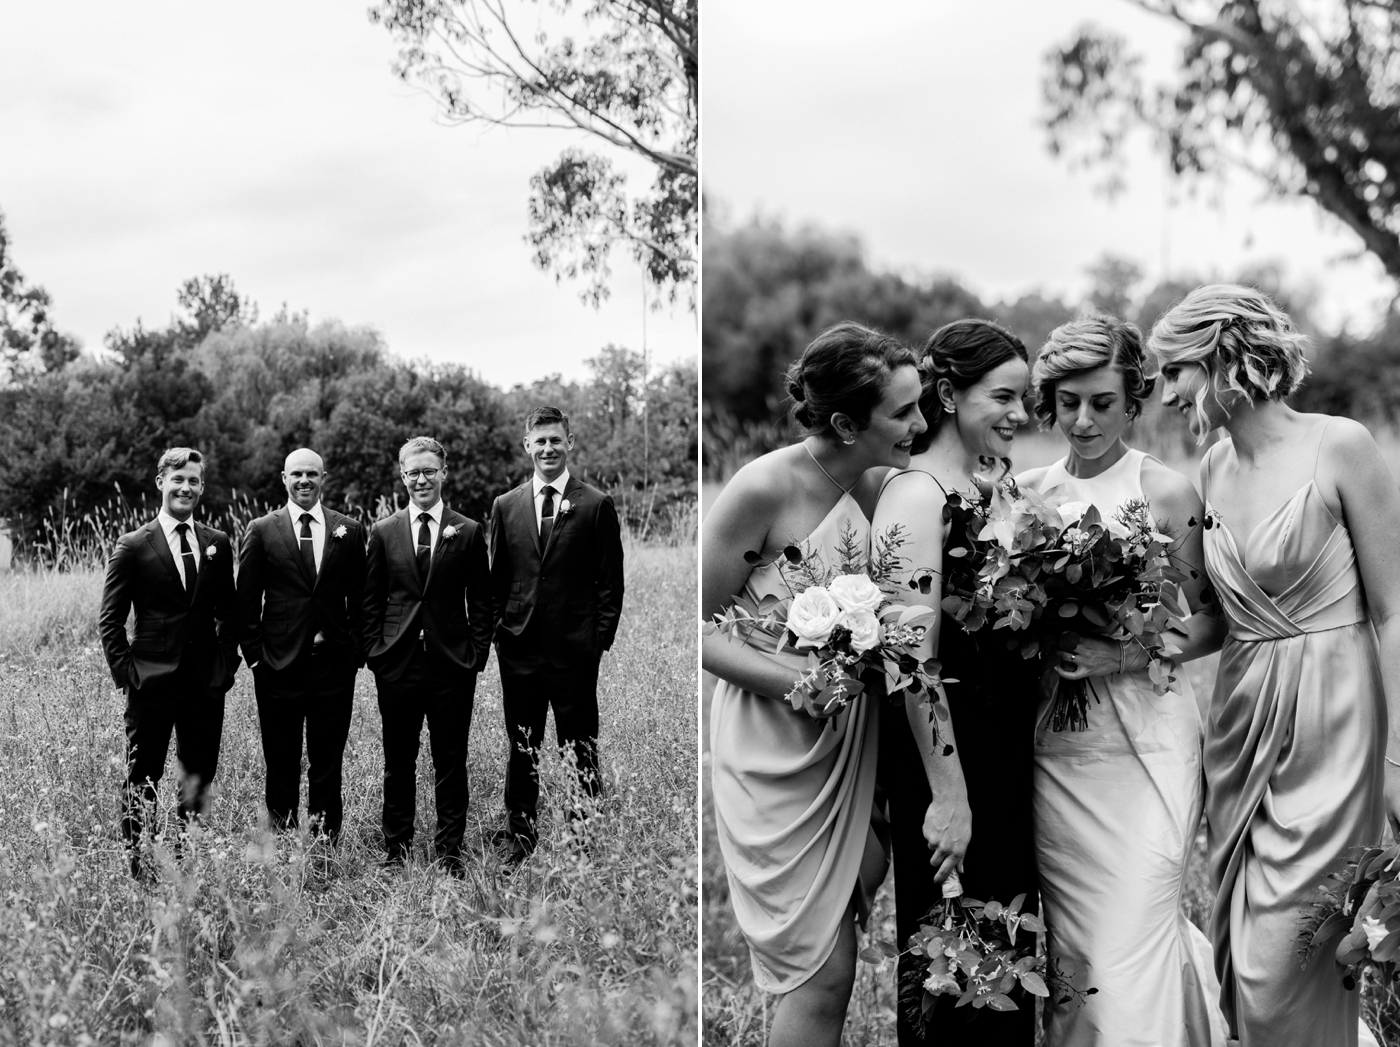 Liam & Bec - White House Adelaide Hills Wedding - Natural Wedding Photography in Adelaide - www.katherineschultzphotography.com 42